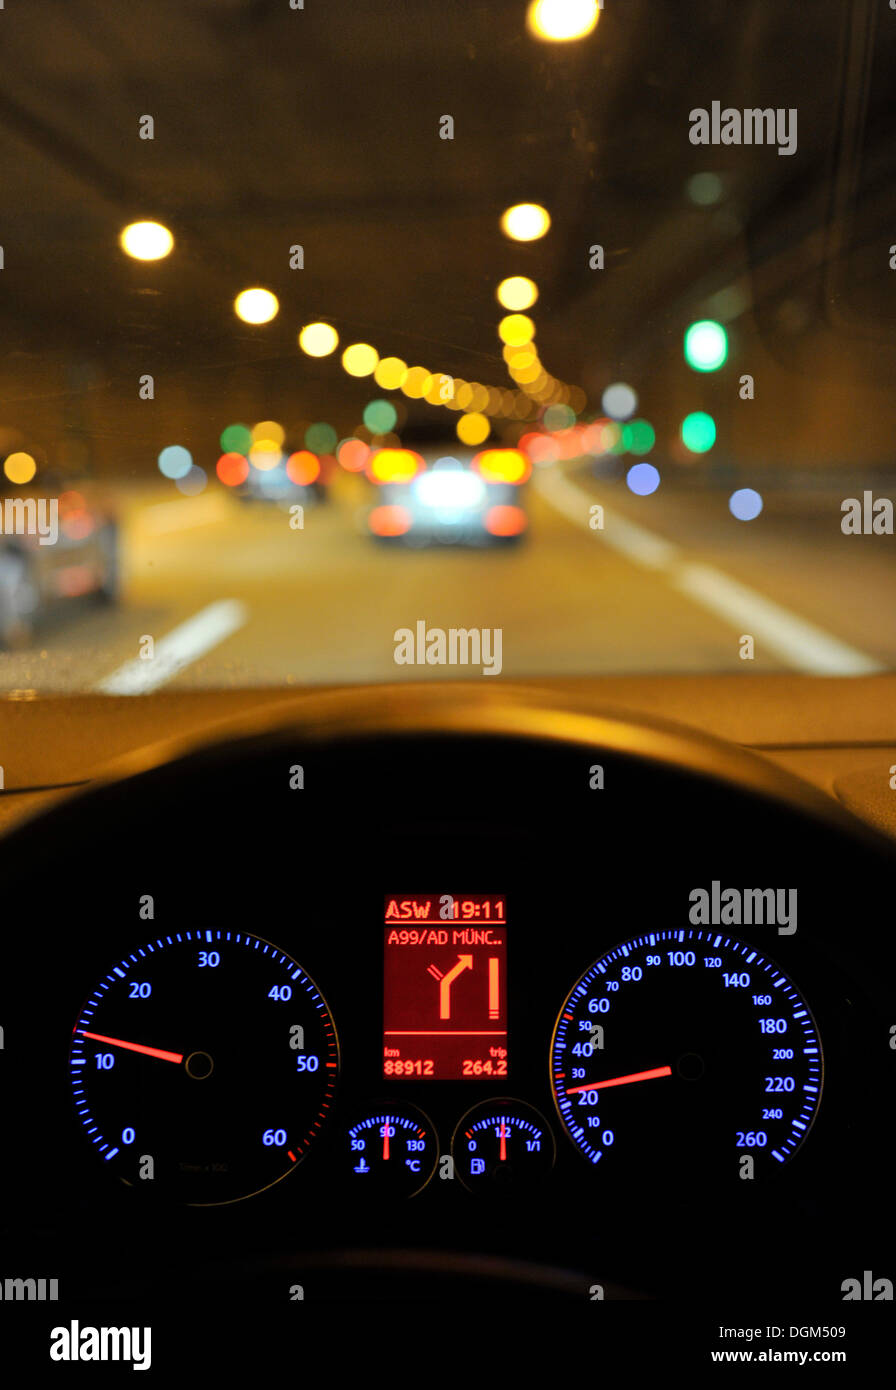 Night, poor visibility in a tunnel, tachometer with navigation display, VW Golf, illuminated, while driving - Stock Image